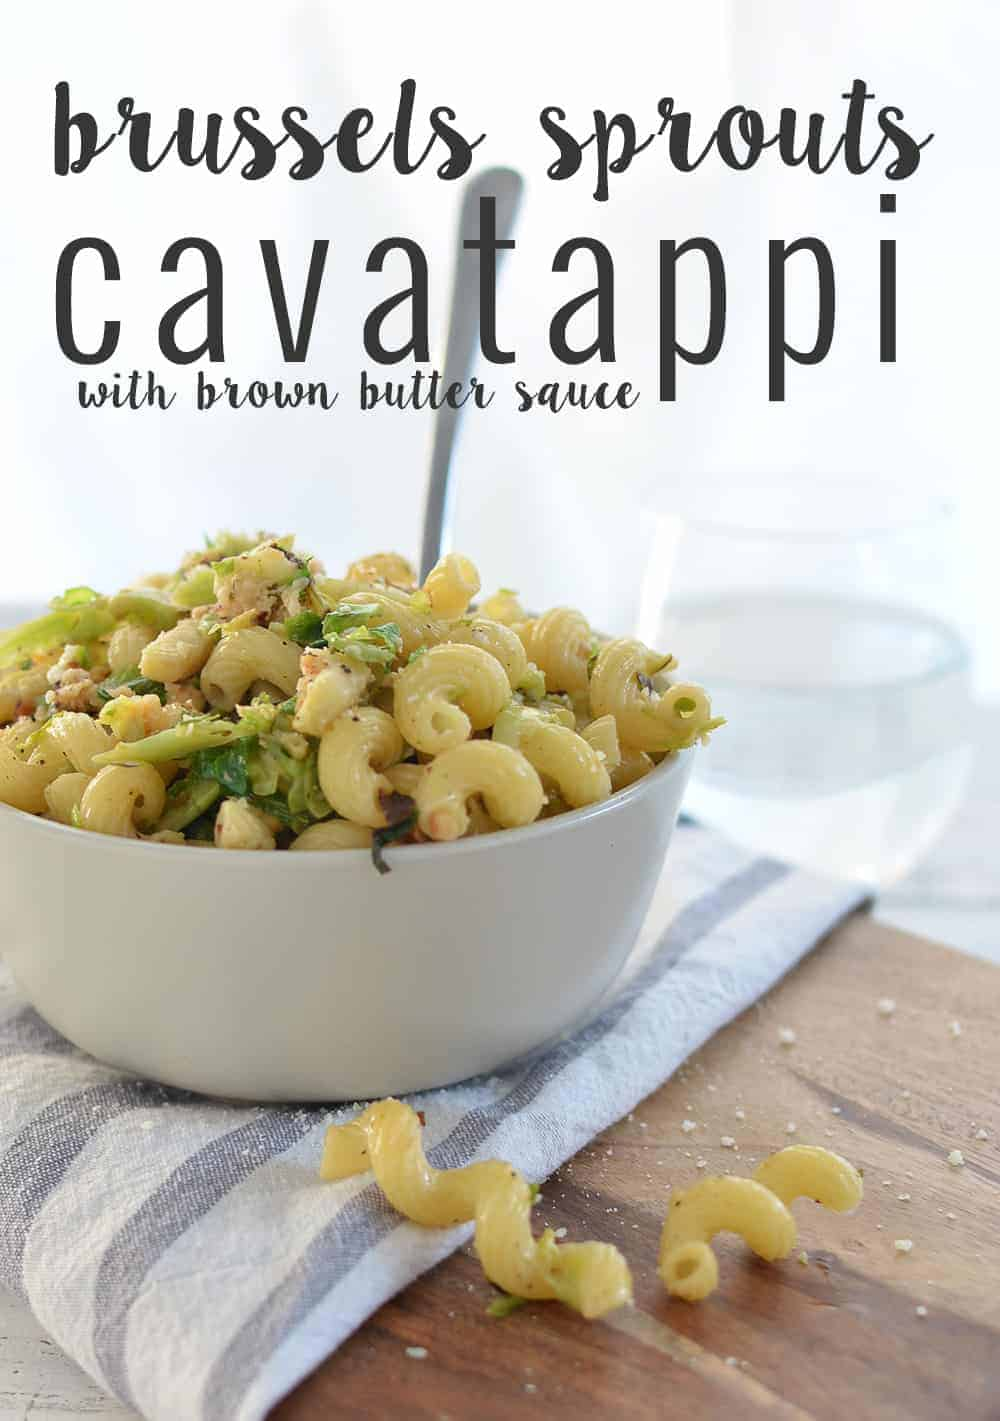 Brussels Sprout and Brown Butter Pasta! A must-make this holiday, so simple and delicious! Crispy brussels sprouts tossed with crunchy nuts, cheese, pasta and browned butter. | www.delishknowledge.com